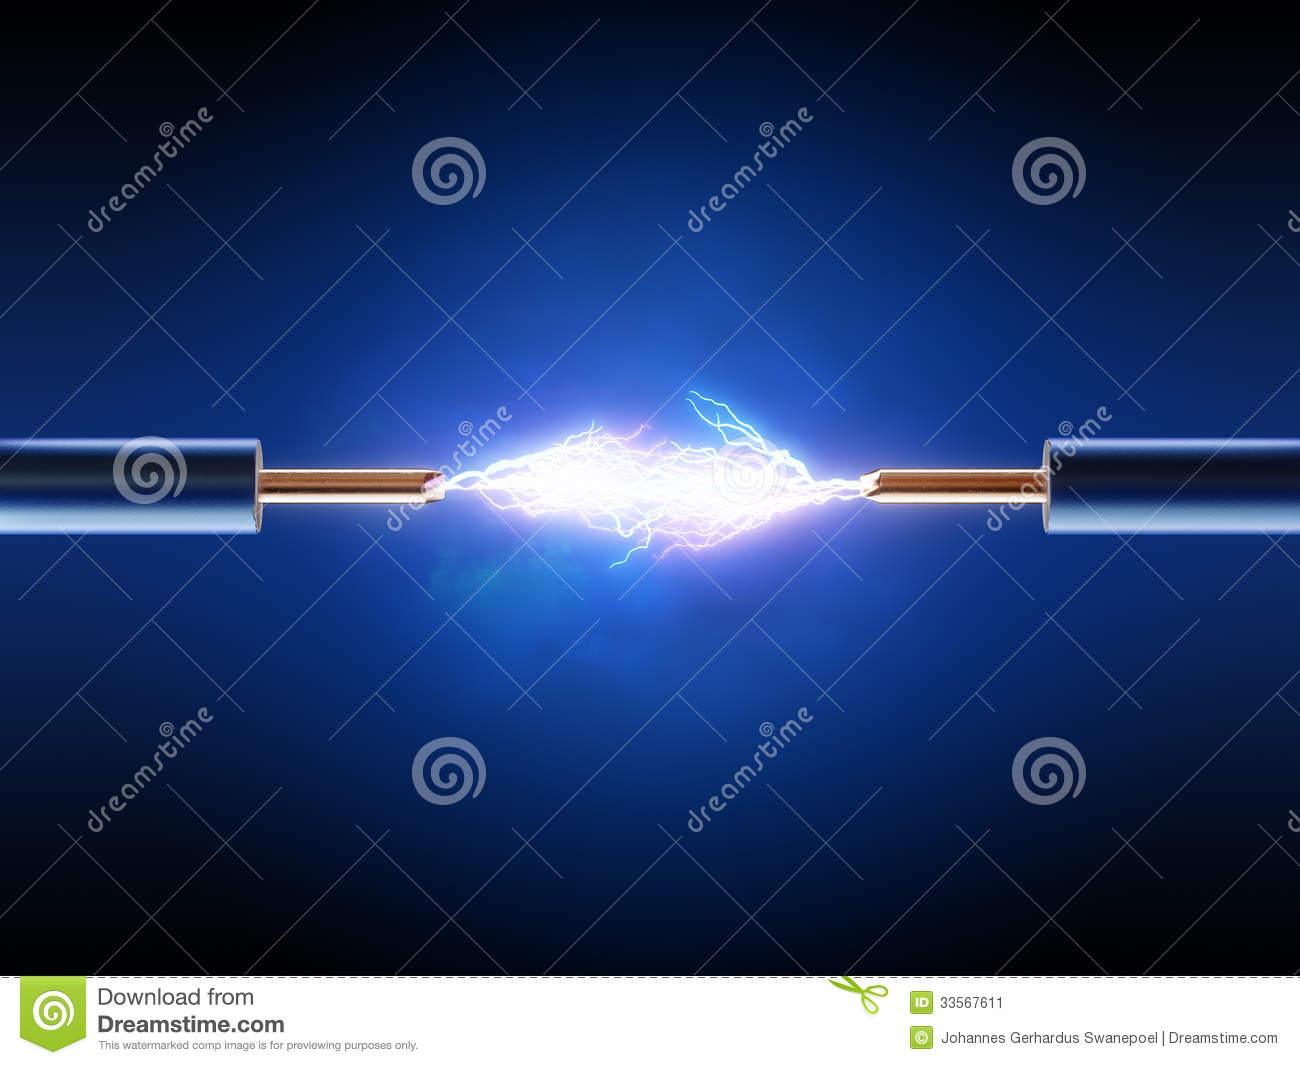 X Acto also Copper Or Aluminium besides 28 Awg Stranded Wire Current Rating as well Stock Image Electrical Spark Two Insulated Copper Wires D Render Image33567611 furthermore ocduffpickups. on insulated copper prices